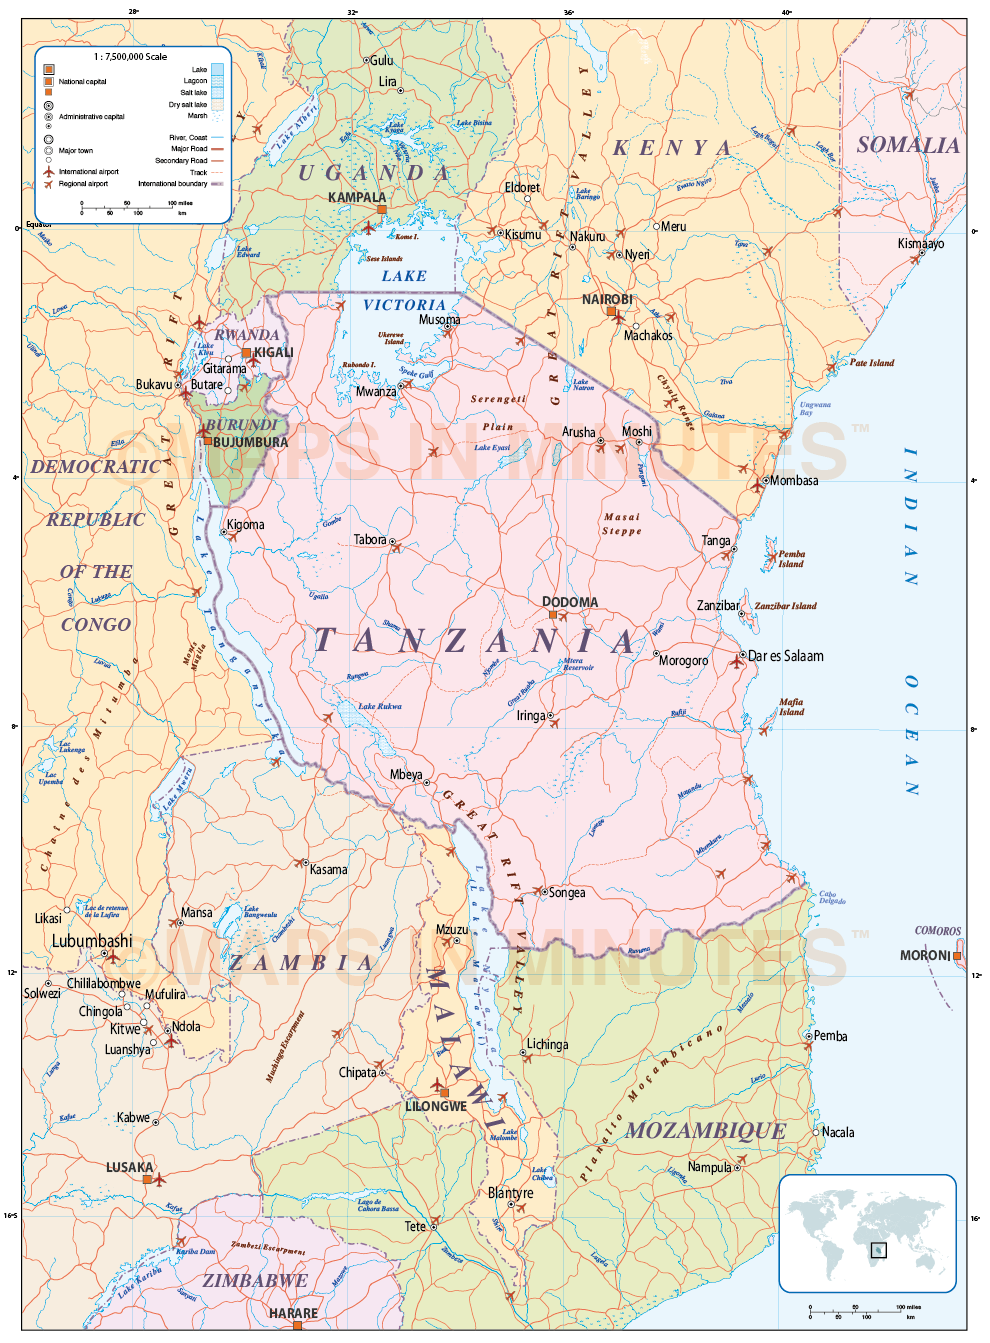 Picture of: Digital Vector Tanzania Political Country Map Plus Roads And Ral In Illustrator Format Royalty Free